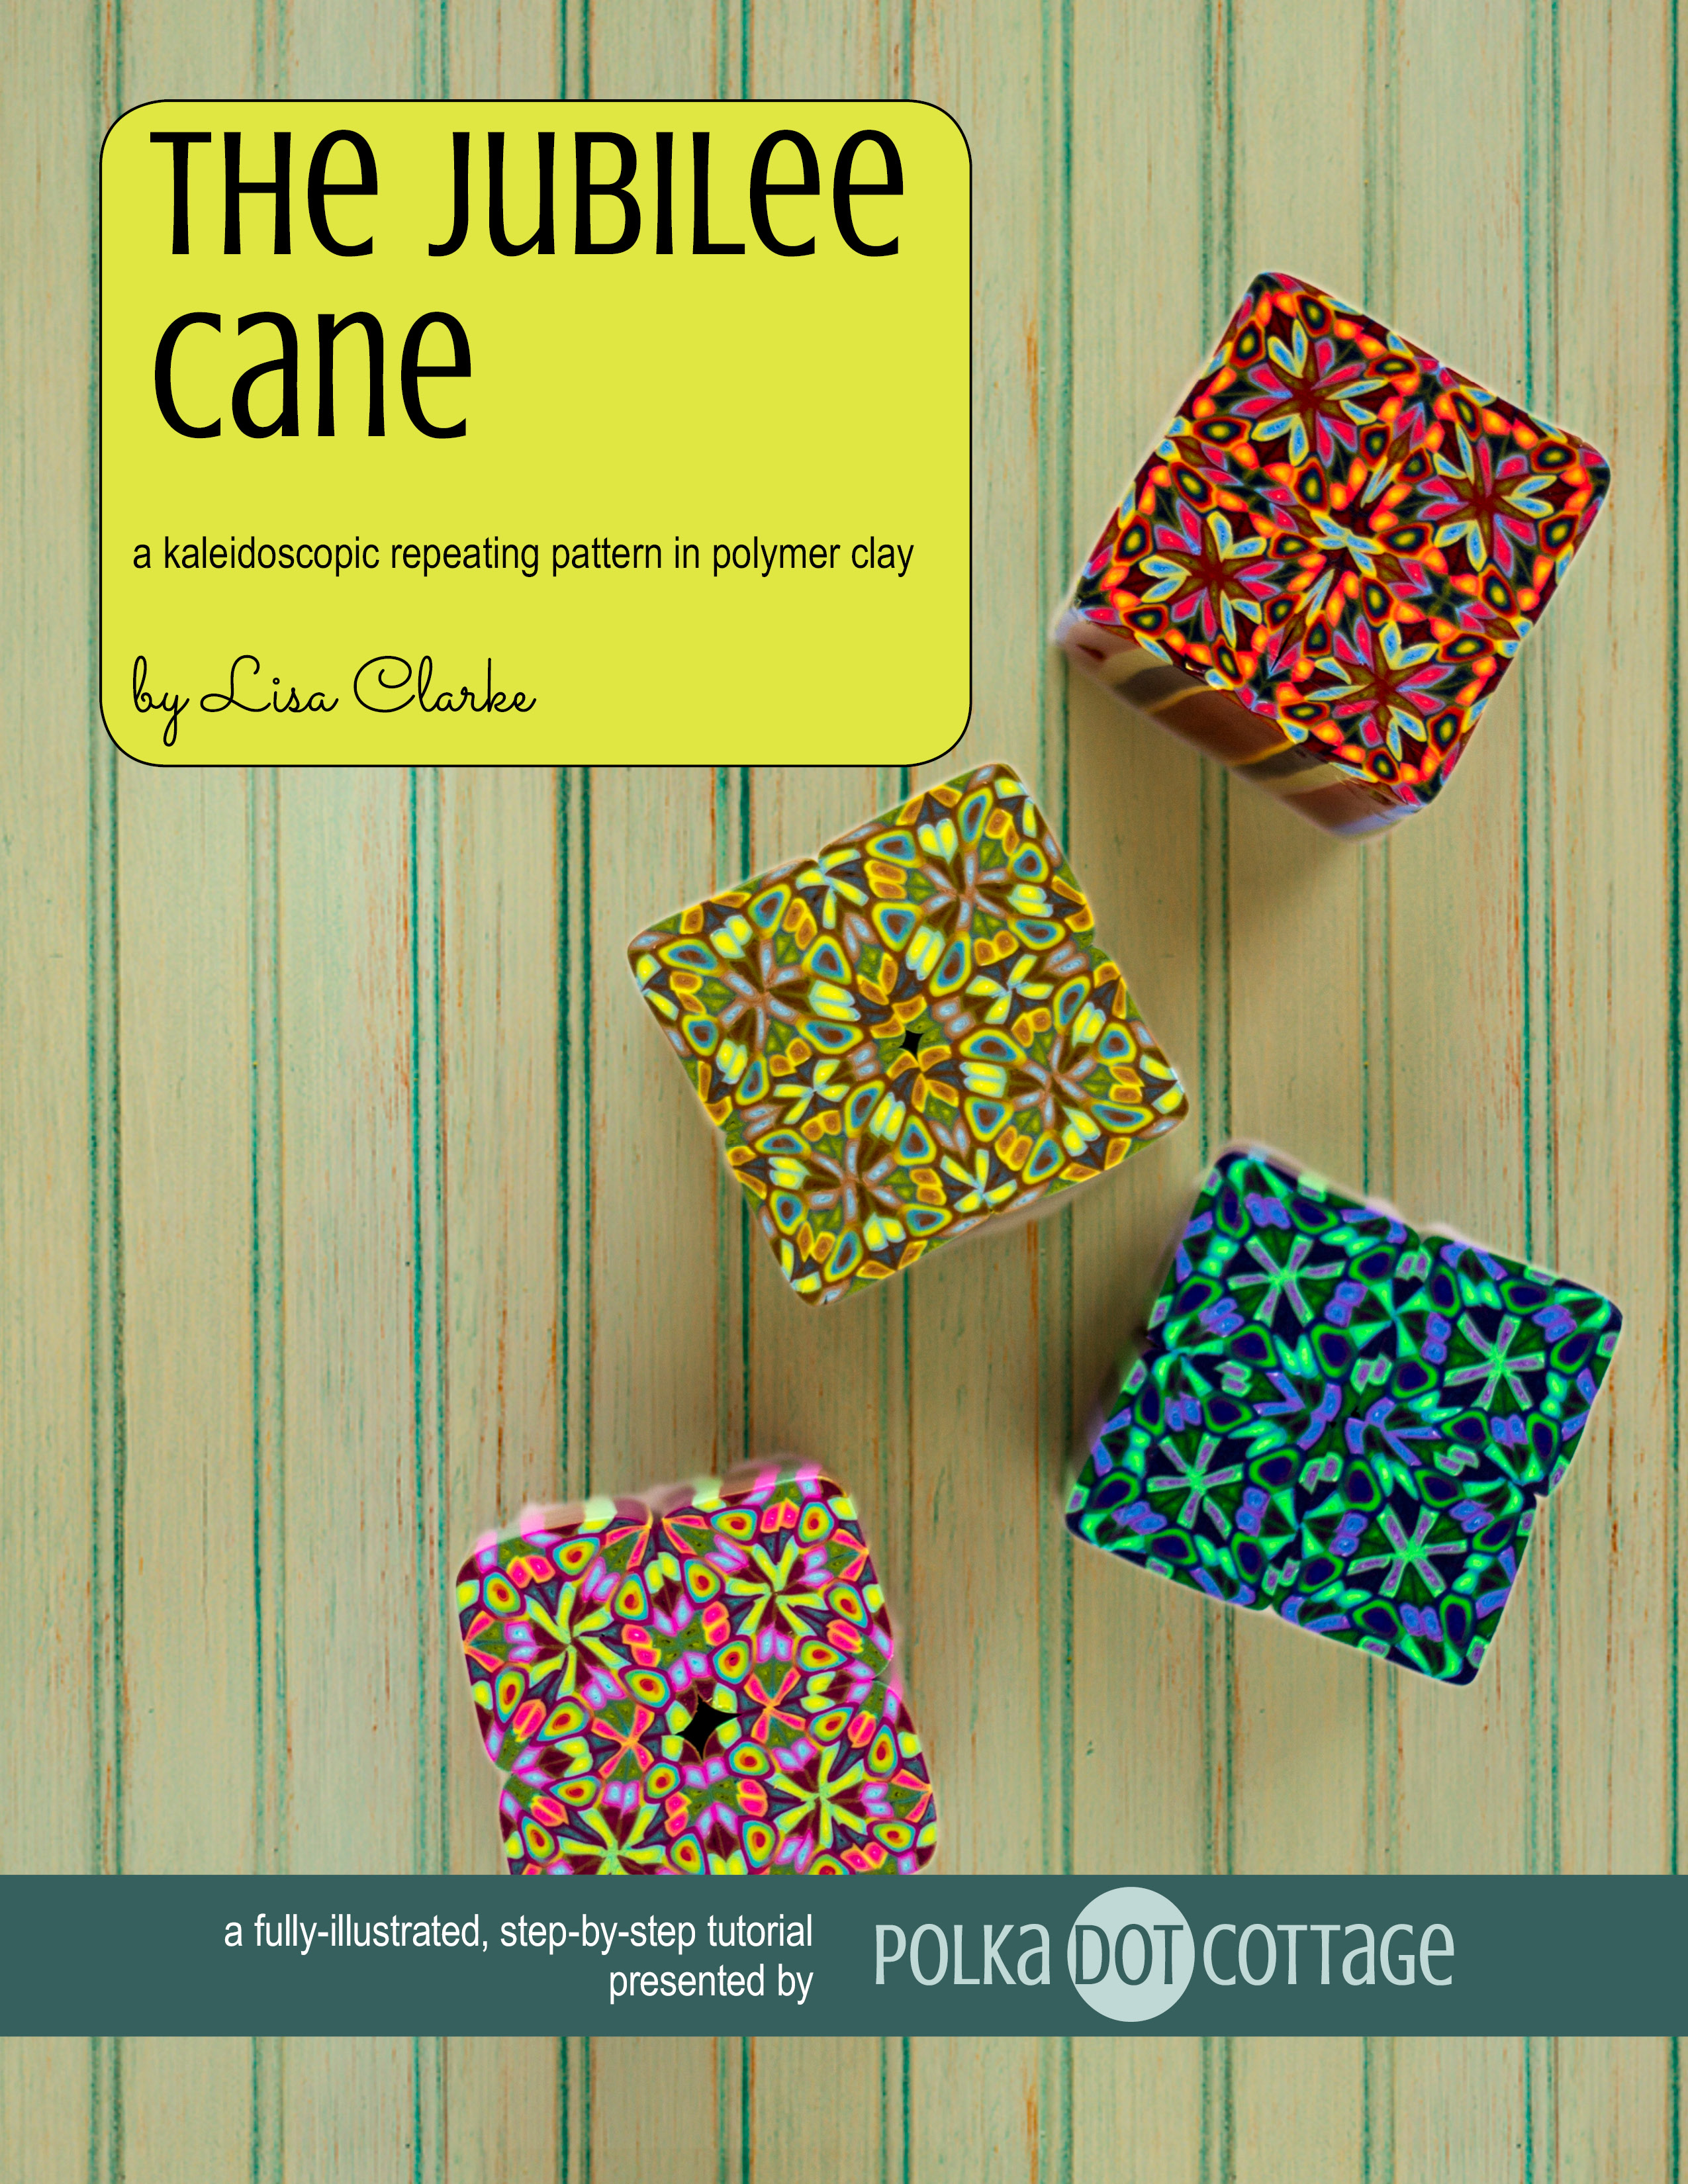 The Jubilee Cane polymer clay tutorial at Polka Dot Cottage